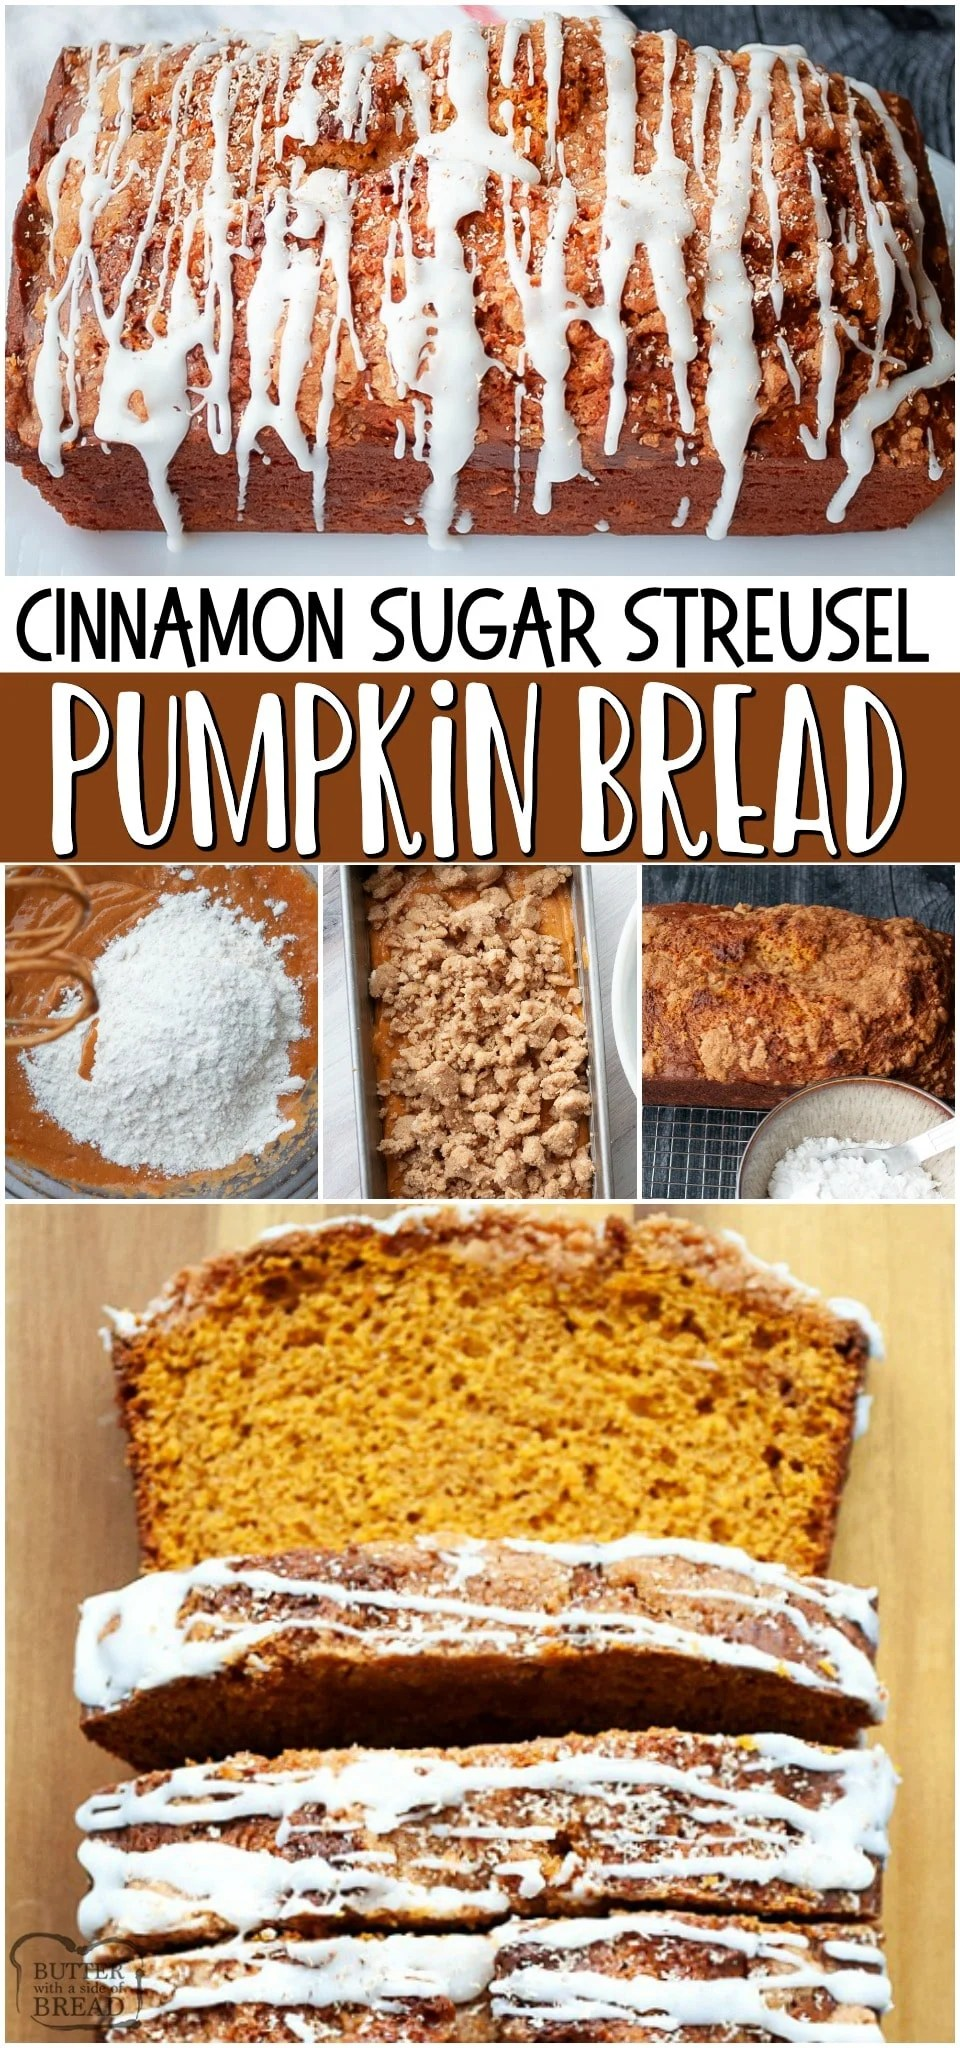 Pumpkin bread with streusel topping ~ classic pumpkin quick bread recipe made with pumpkin, brown sugar, spices & more. Moist pumpkin bread with cinnamon sugar topping and a simple glaze, this bread is a perfect snack or treat.